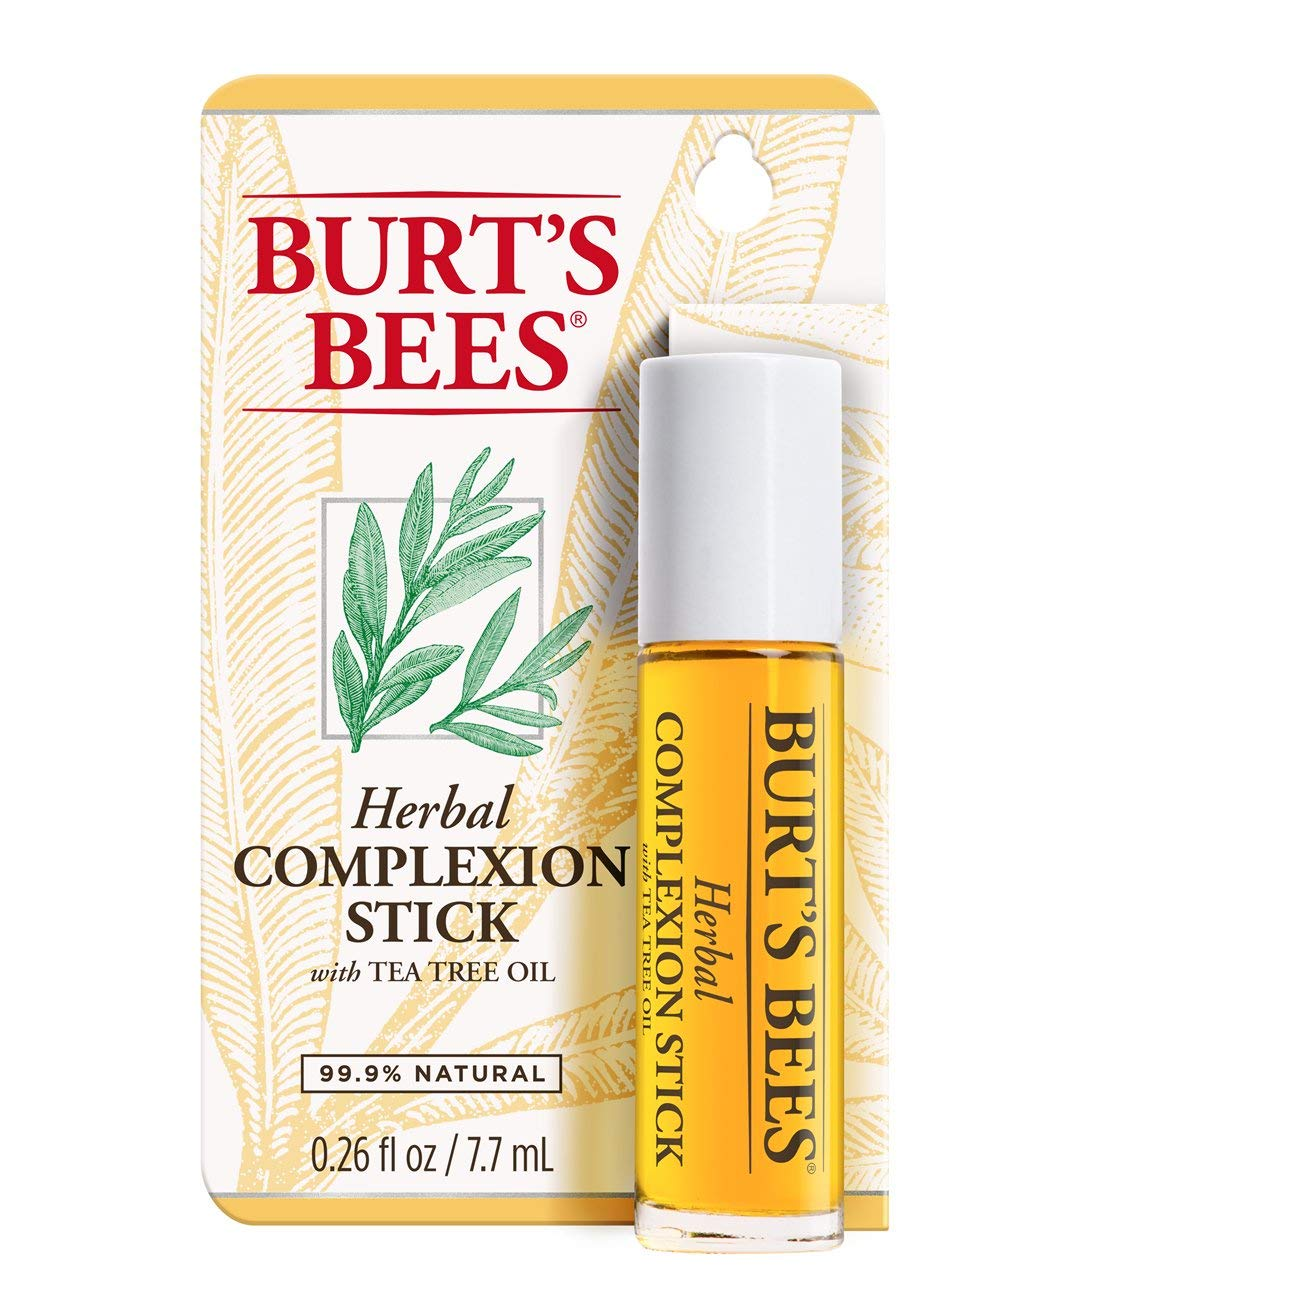 Burt's Bees Herbal Complexion Stick (Pack of 2) by Burt's Bees